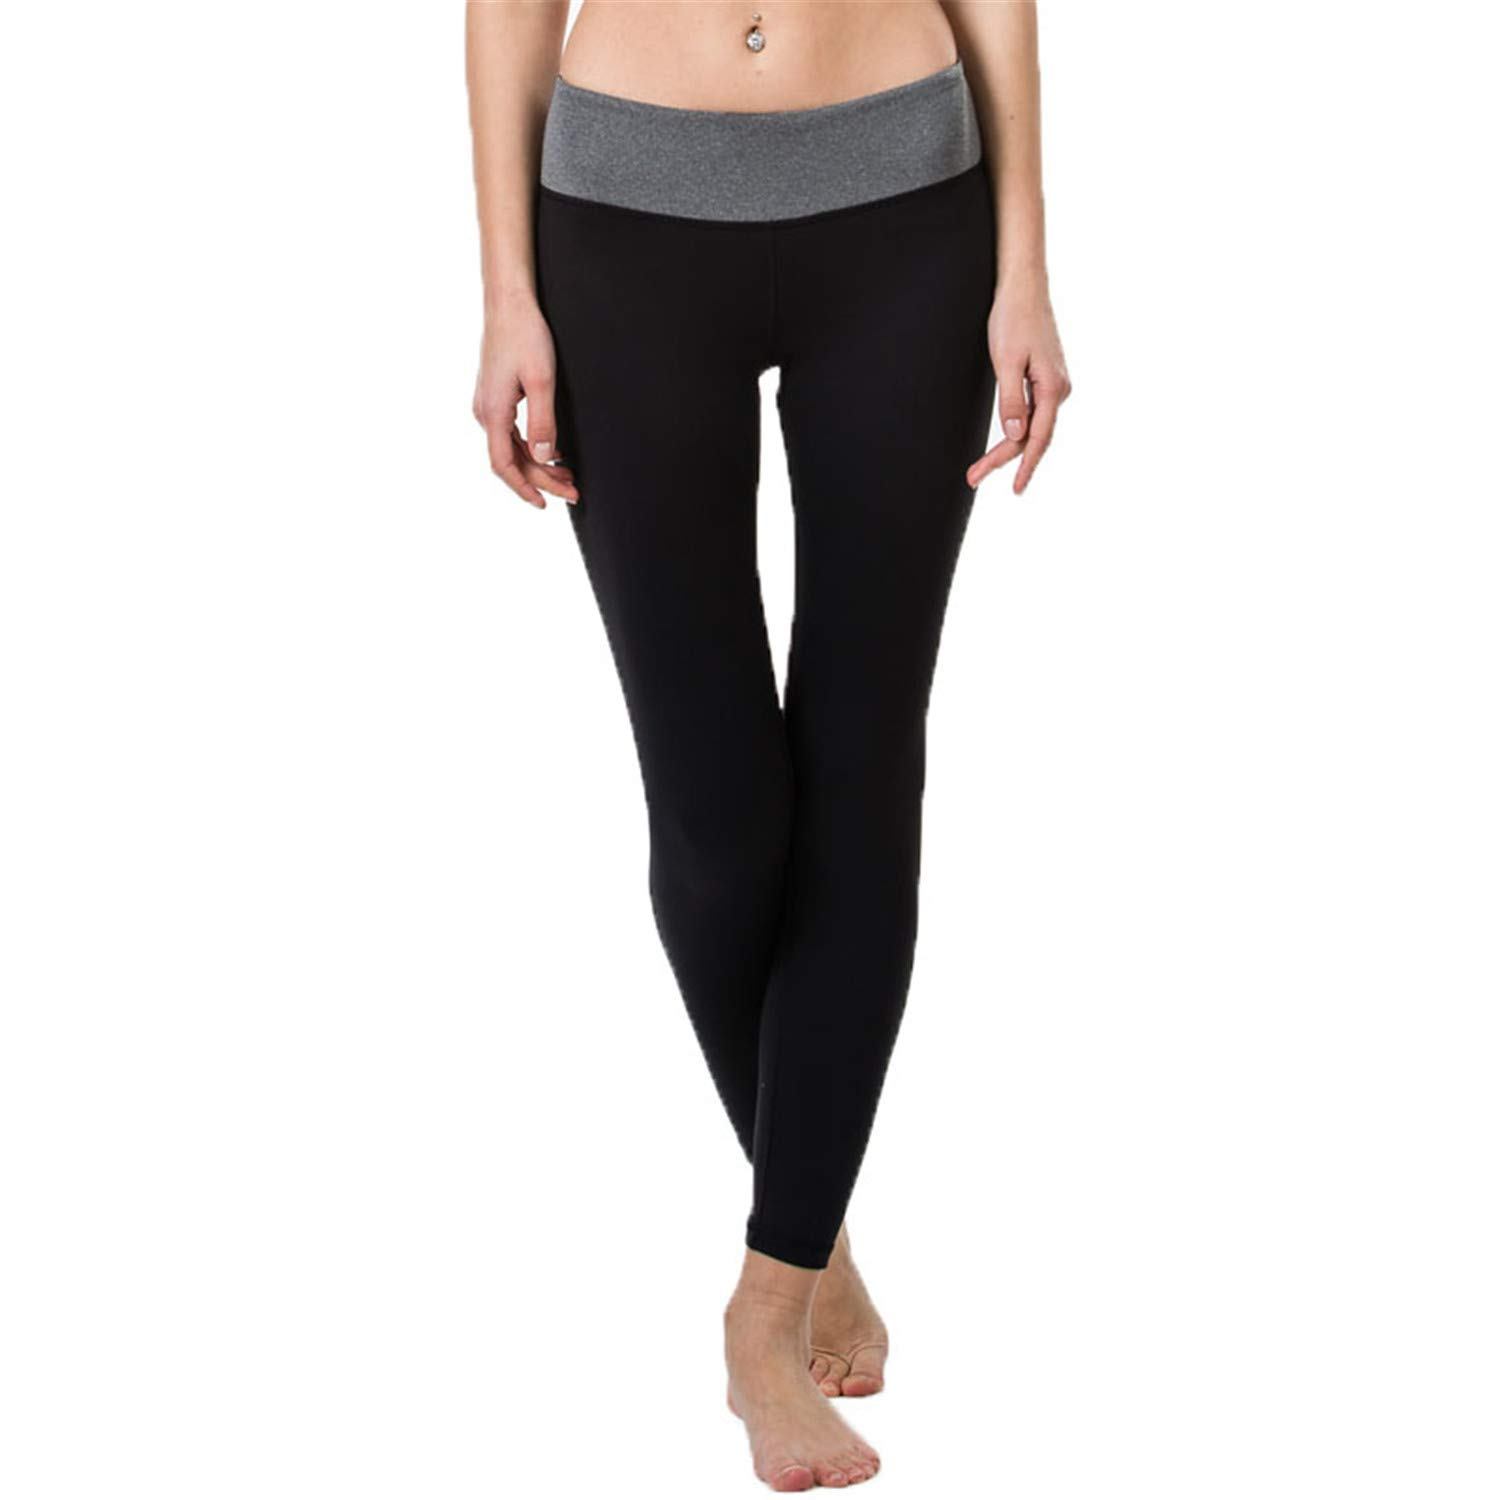 Amazon.com: Yoga Pant Womens Compression Running Leggings ...